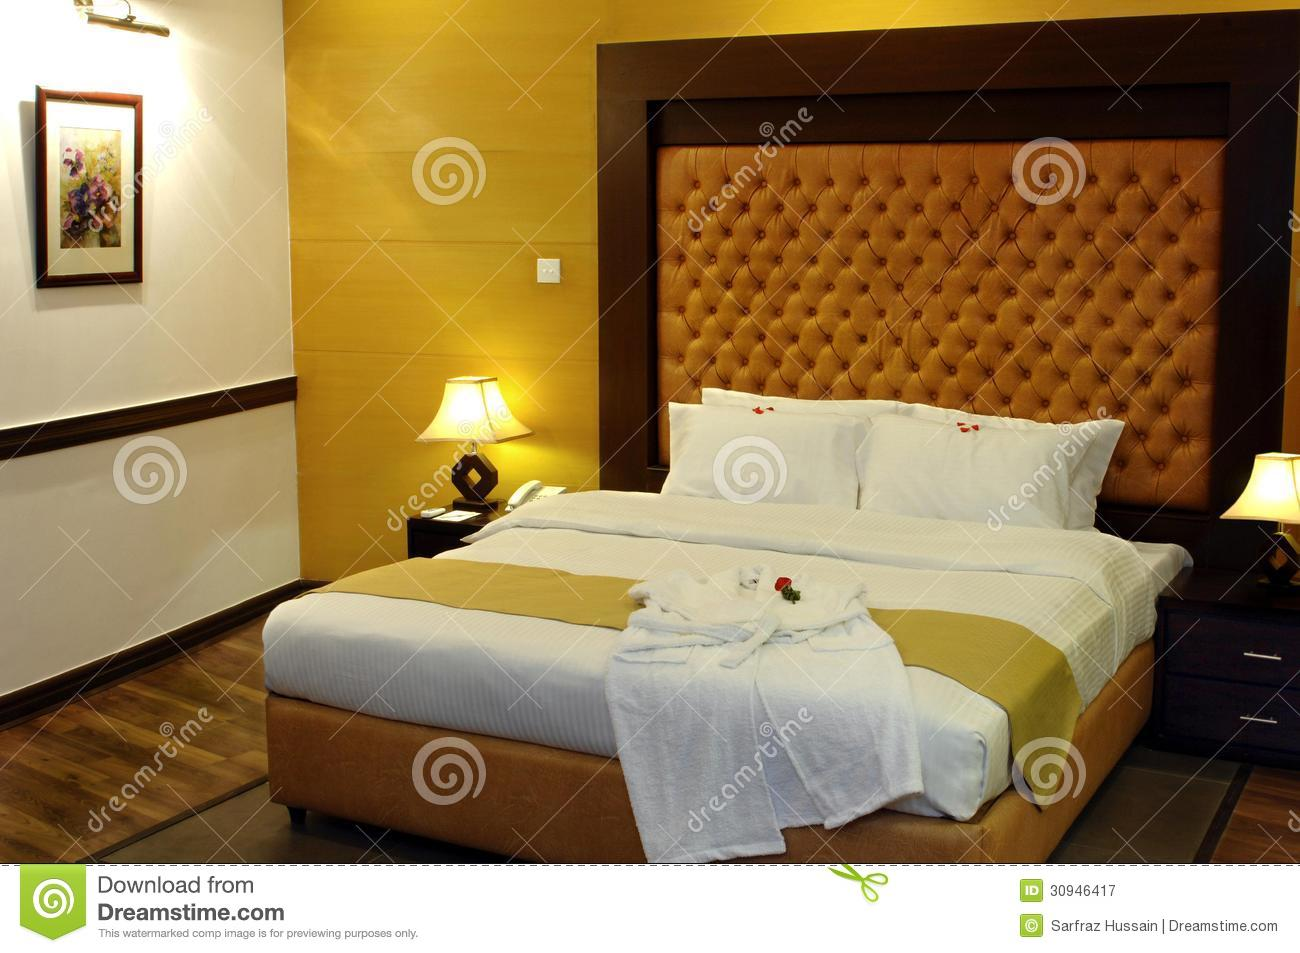 Bed Room Royalty Free Stock graphy Image